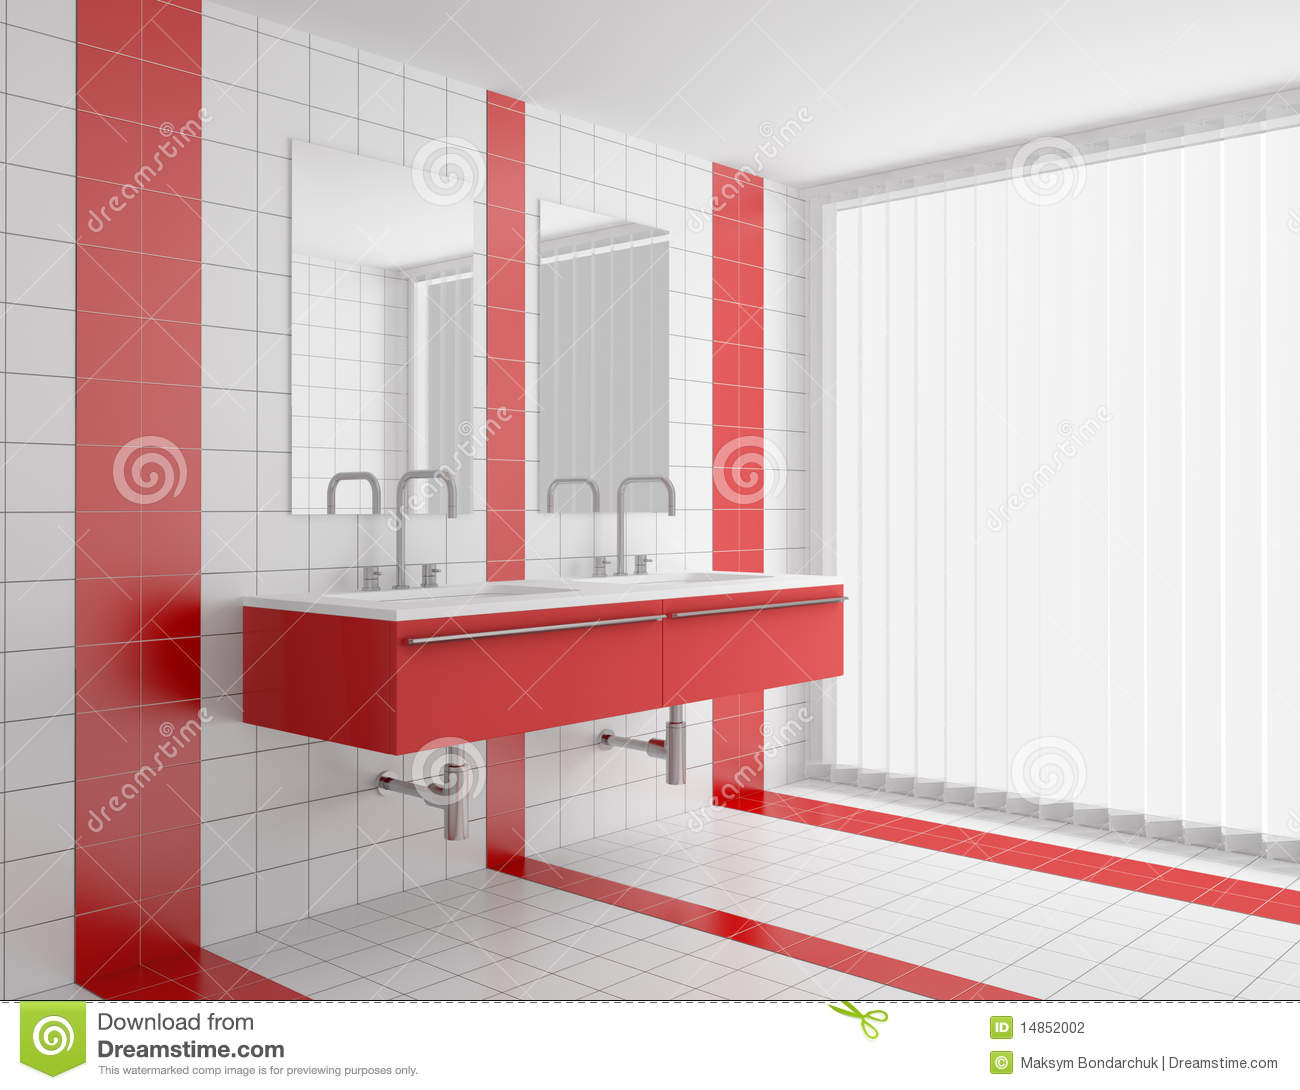 Modern bathroom with red and white tiles